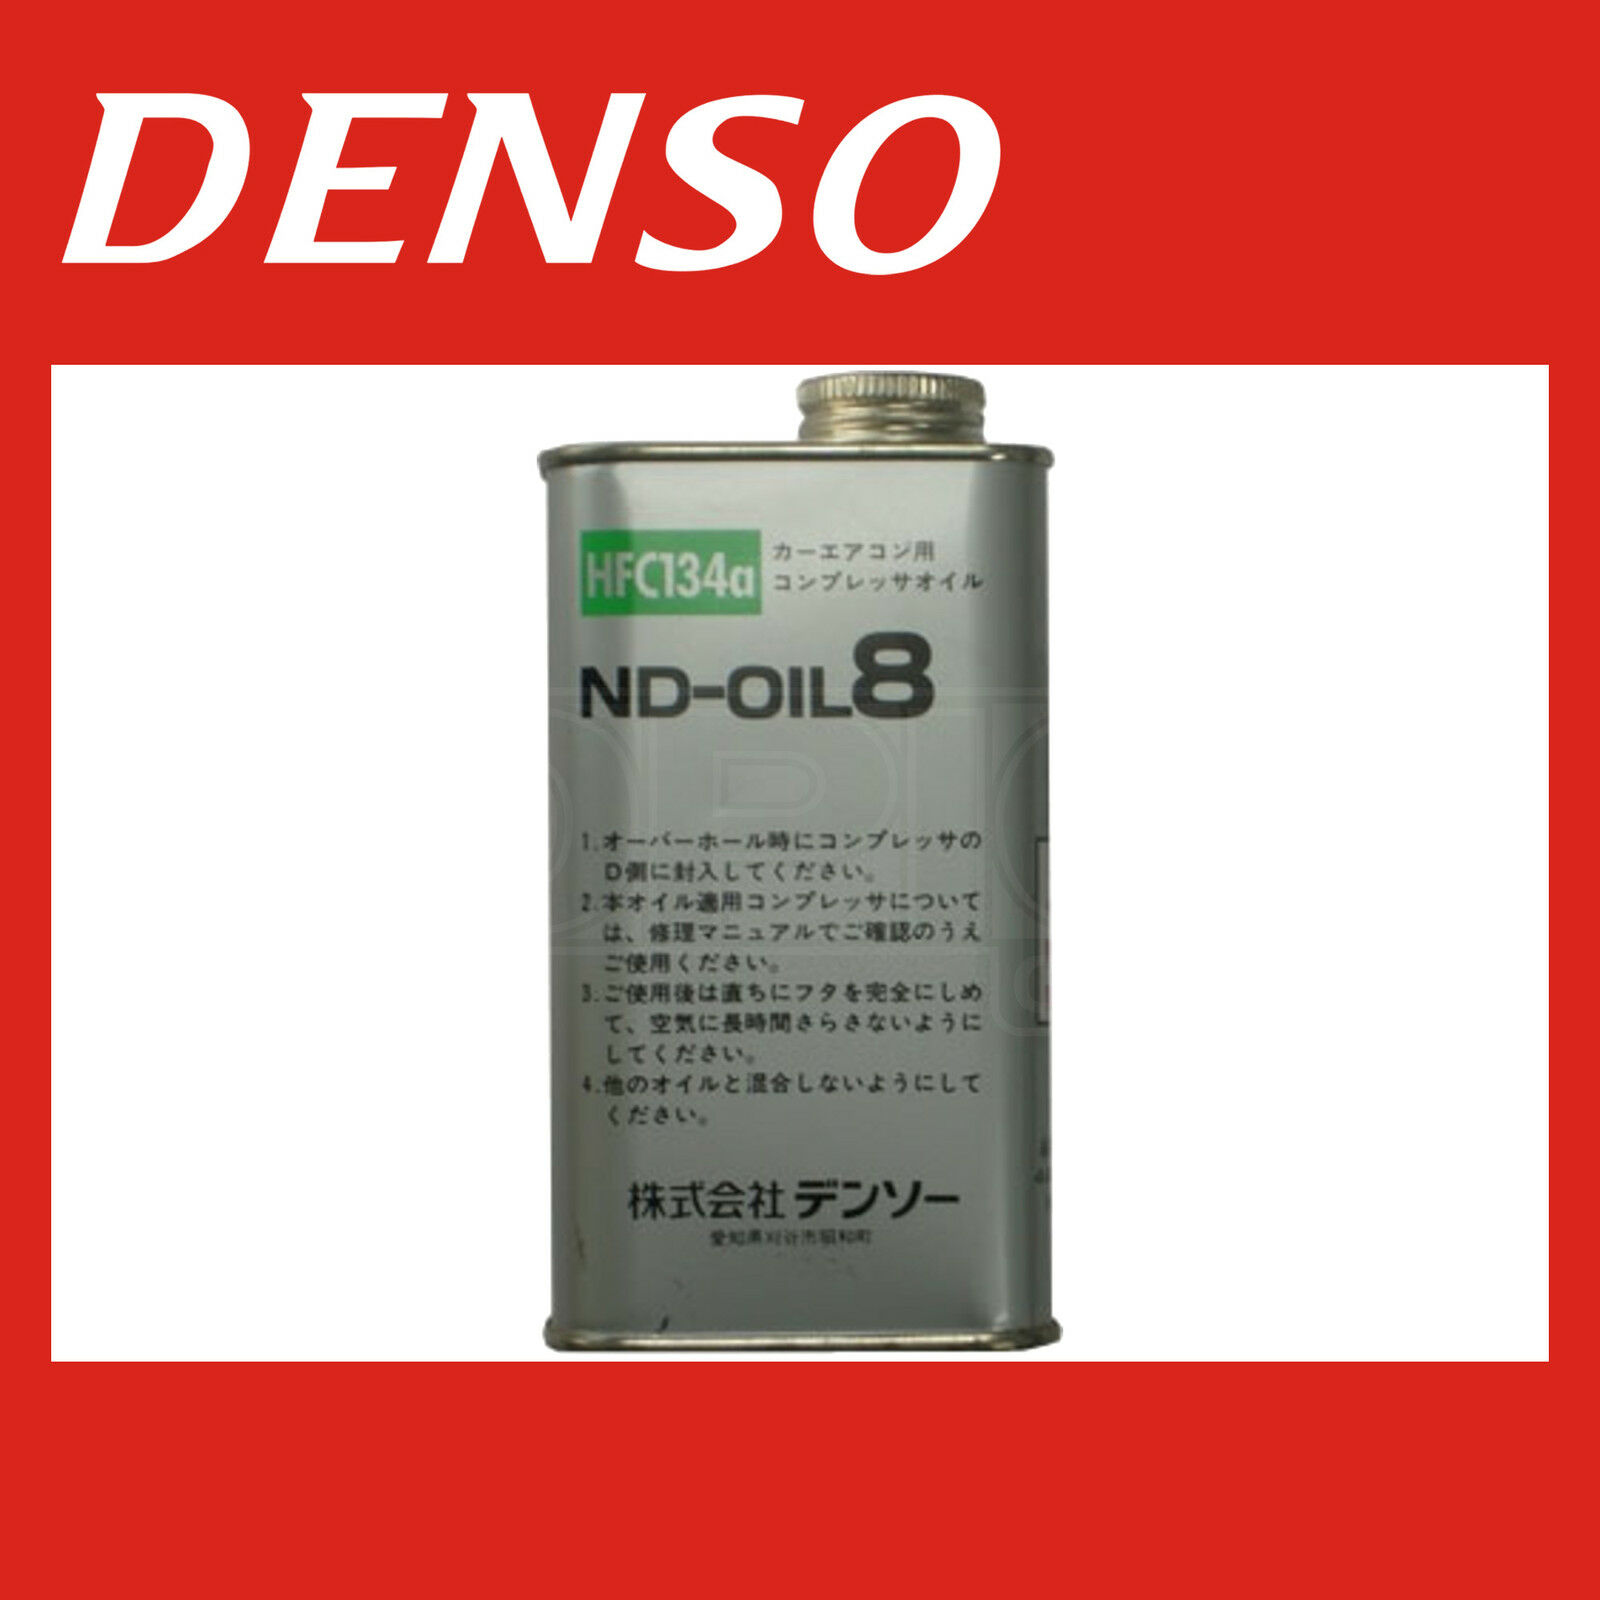 Denso A C Air Conditioner Compressor Oil 446963 0030 Nd 8 Kompresor Vw Polo 1 Of 1only Available